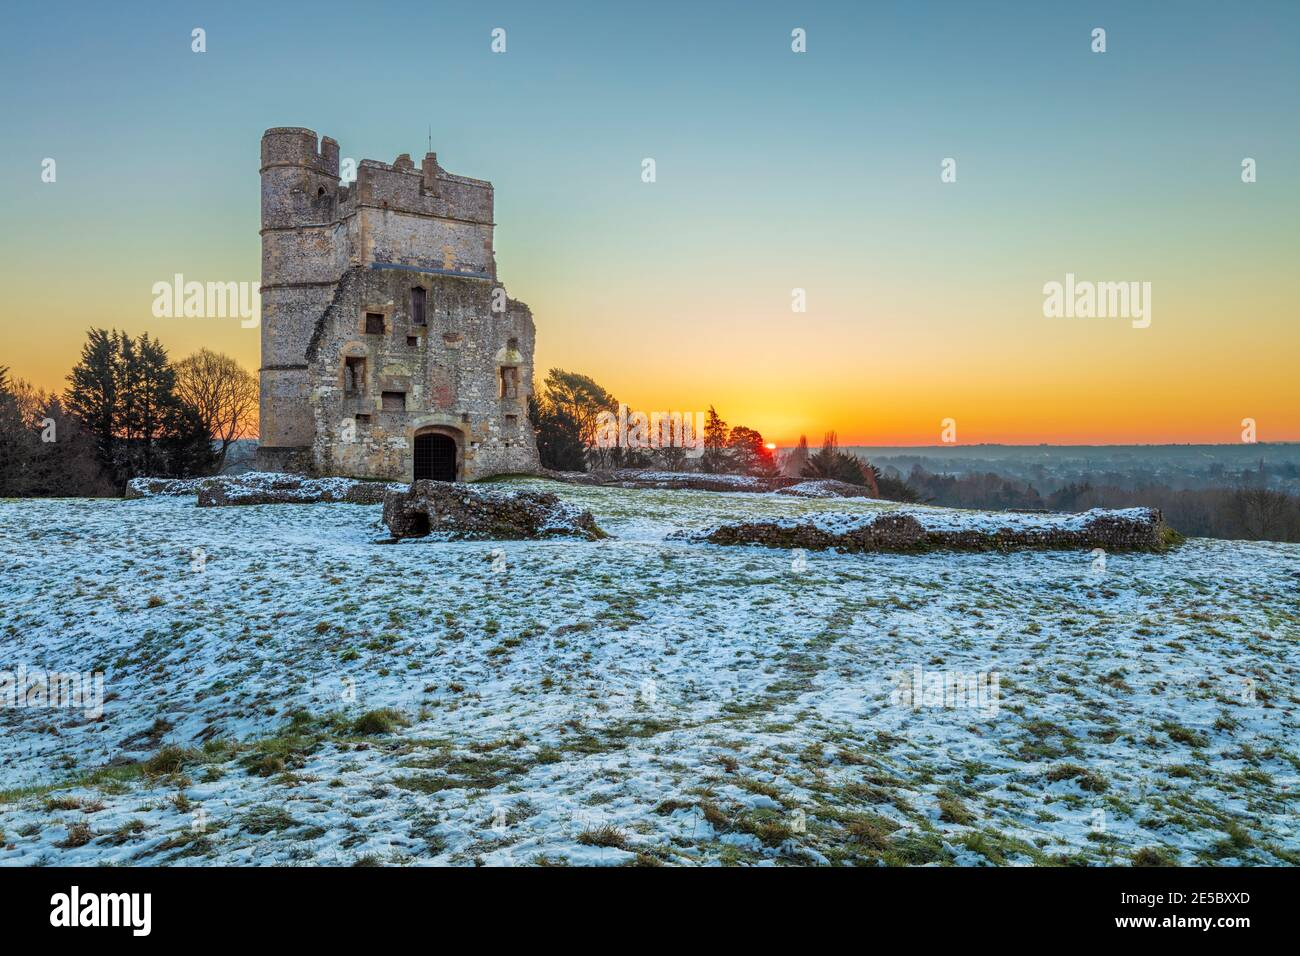 Donnington Castle in winter frost and snow at sunrise, Newbury, Berkshire, England, United Kingdom, Europe Stock Photo